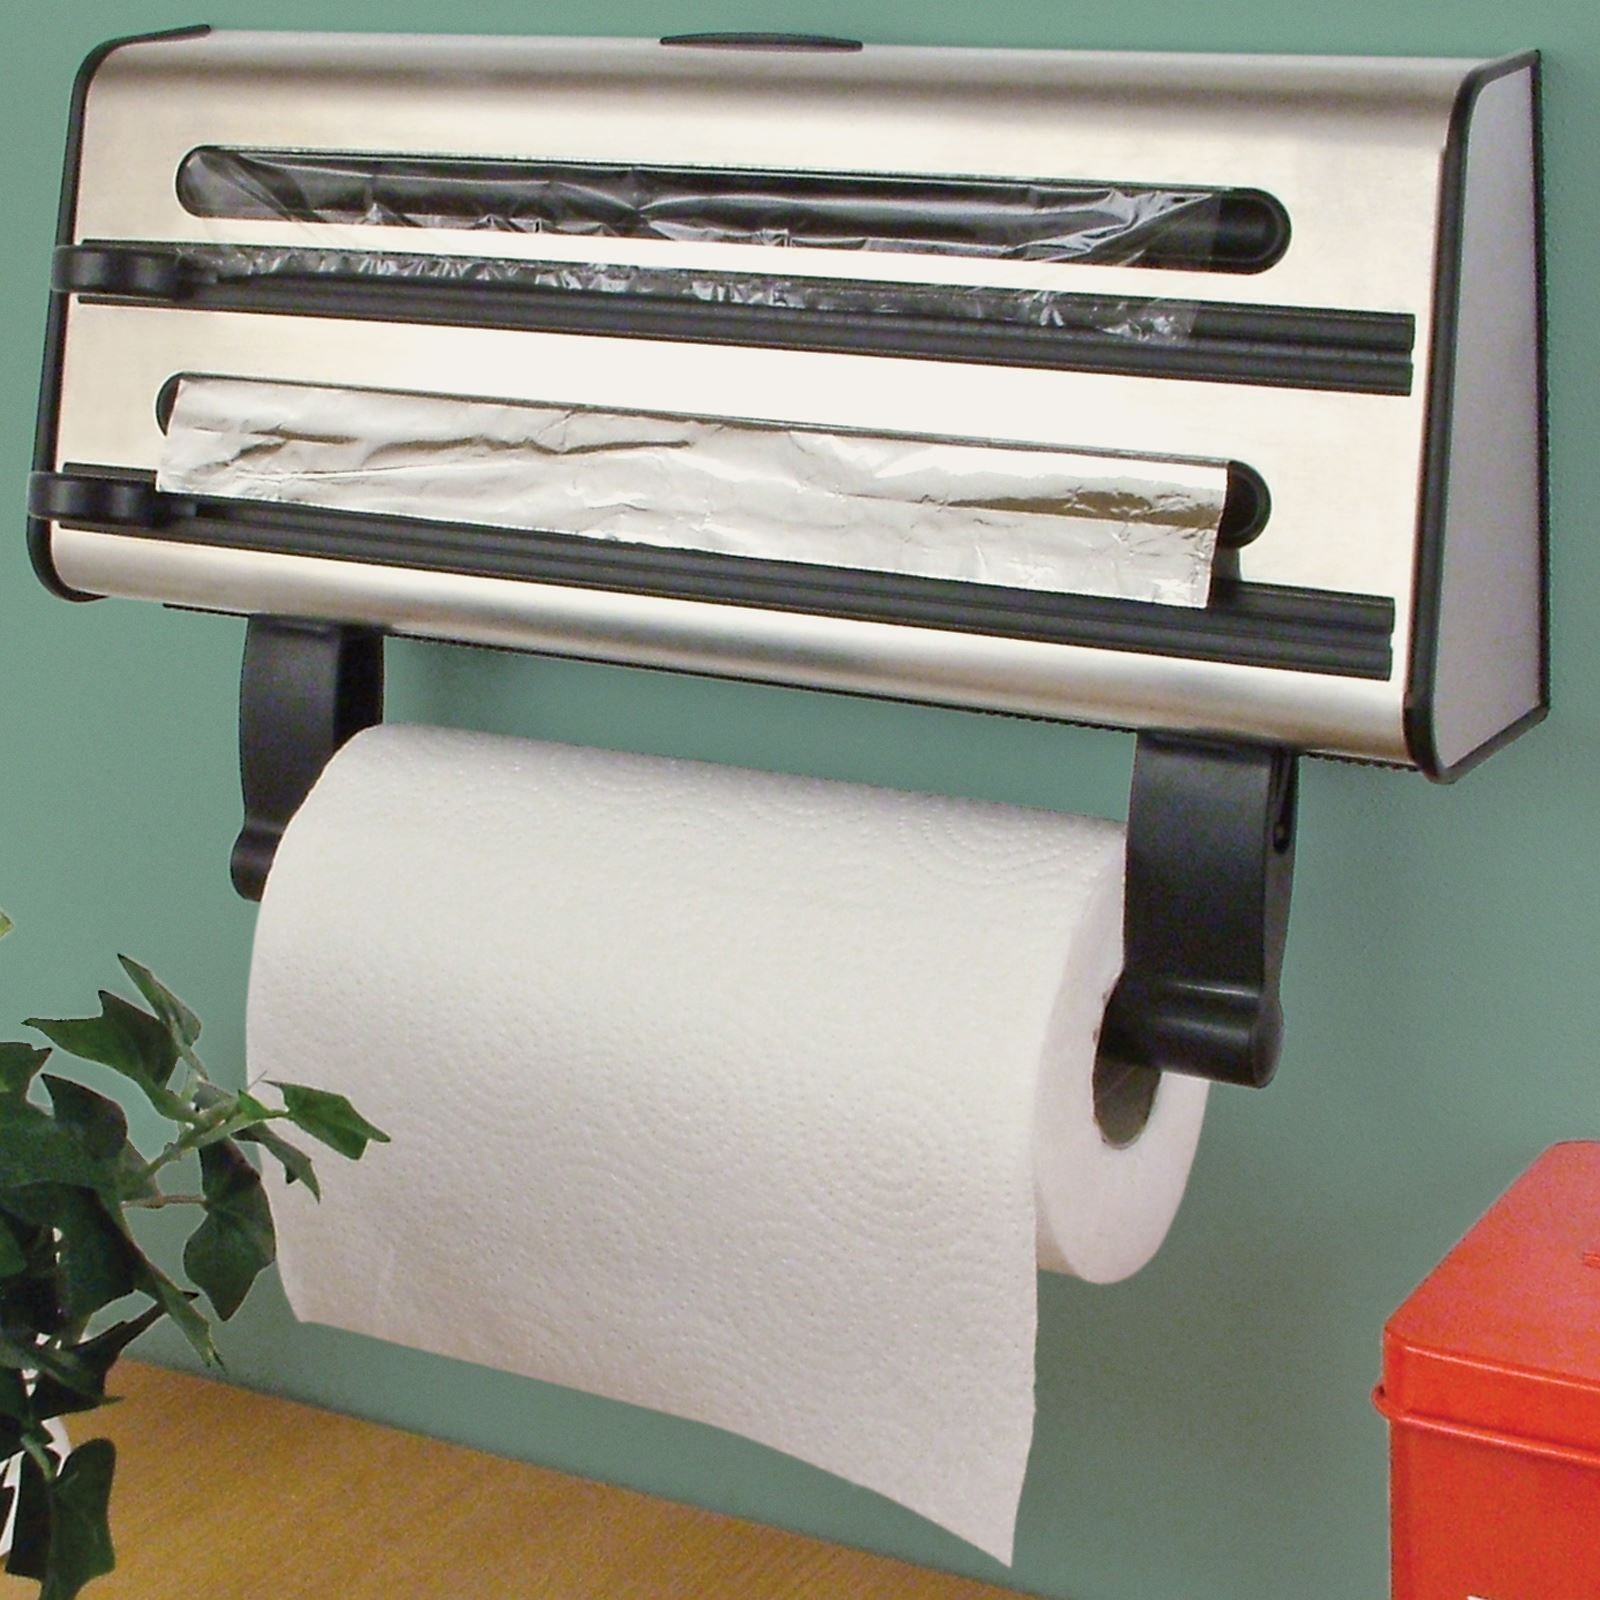 kitchen towel holder wall mounted. Kitchen Triple Roll Dispenser Cling Film Tin Foil Towel Holder Rack Wall Mounted A